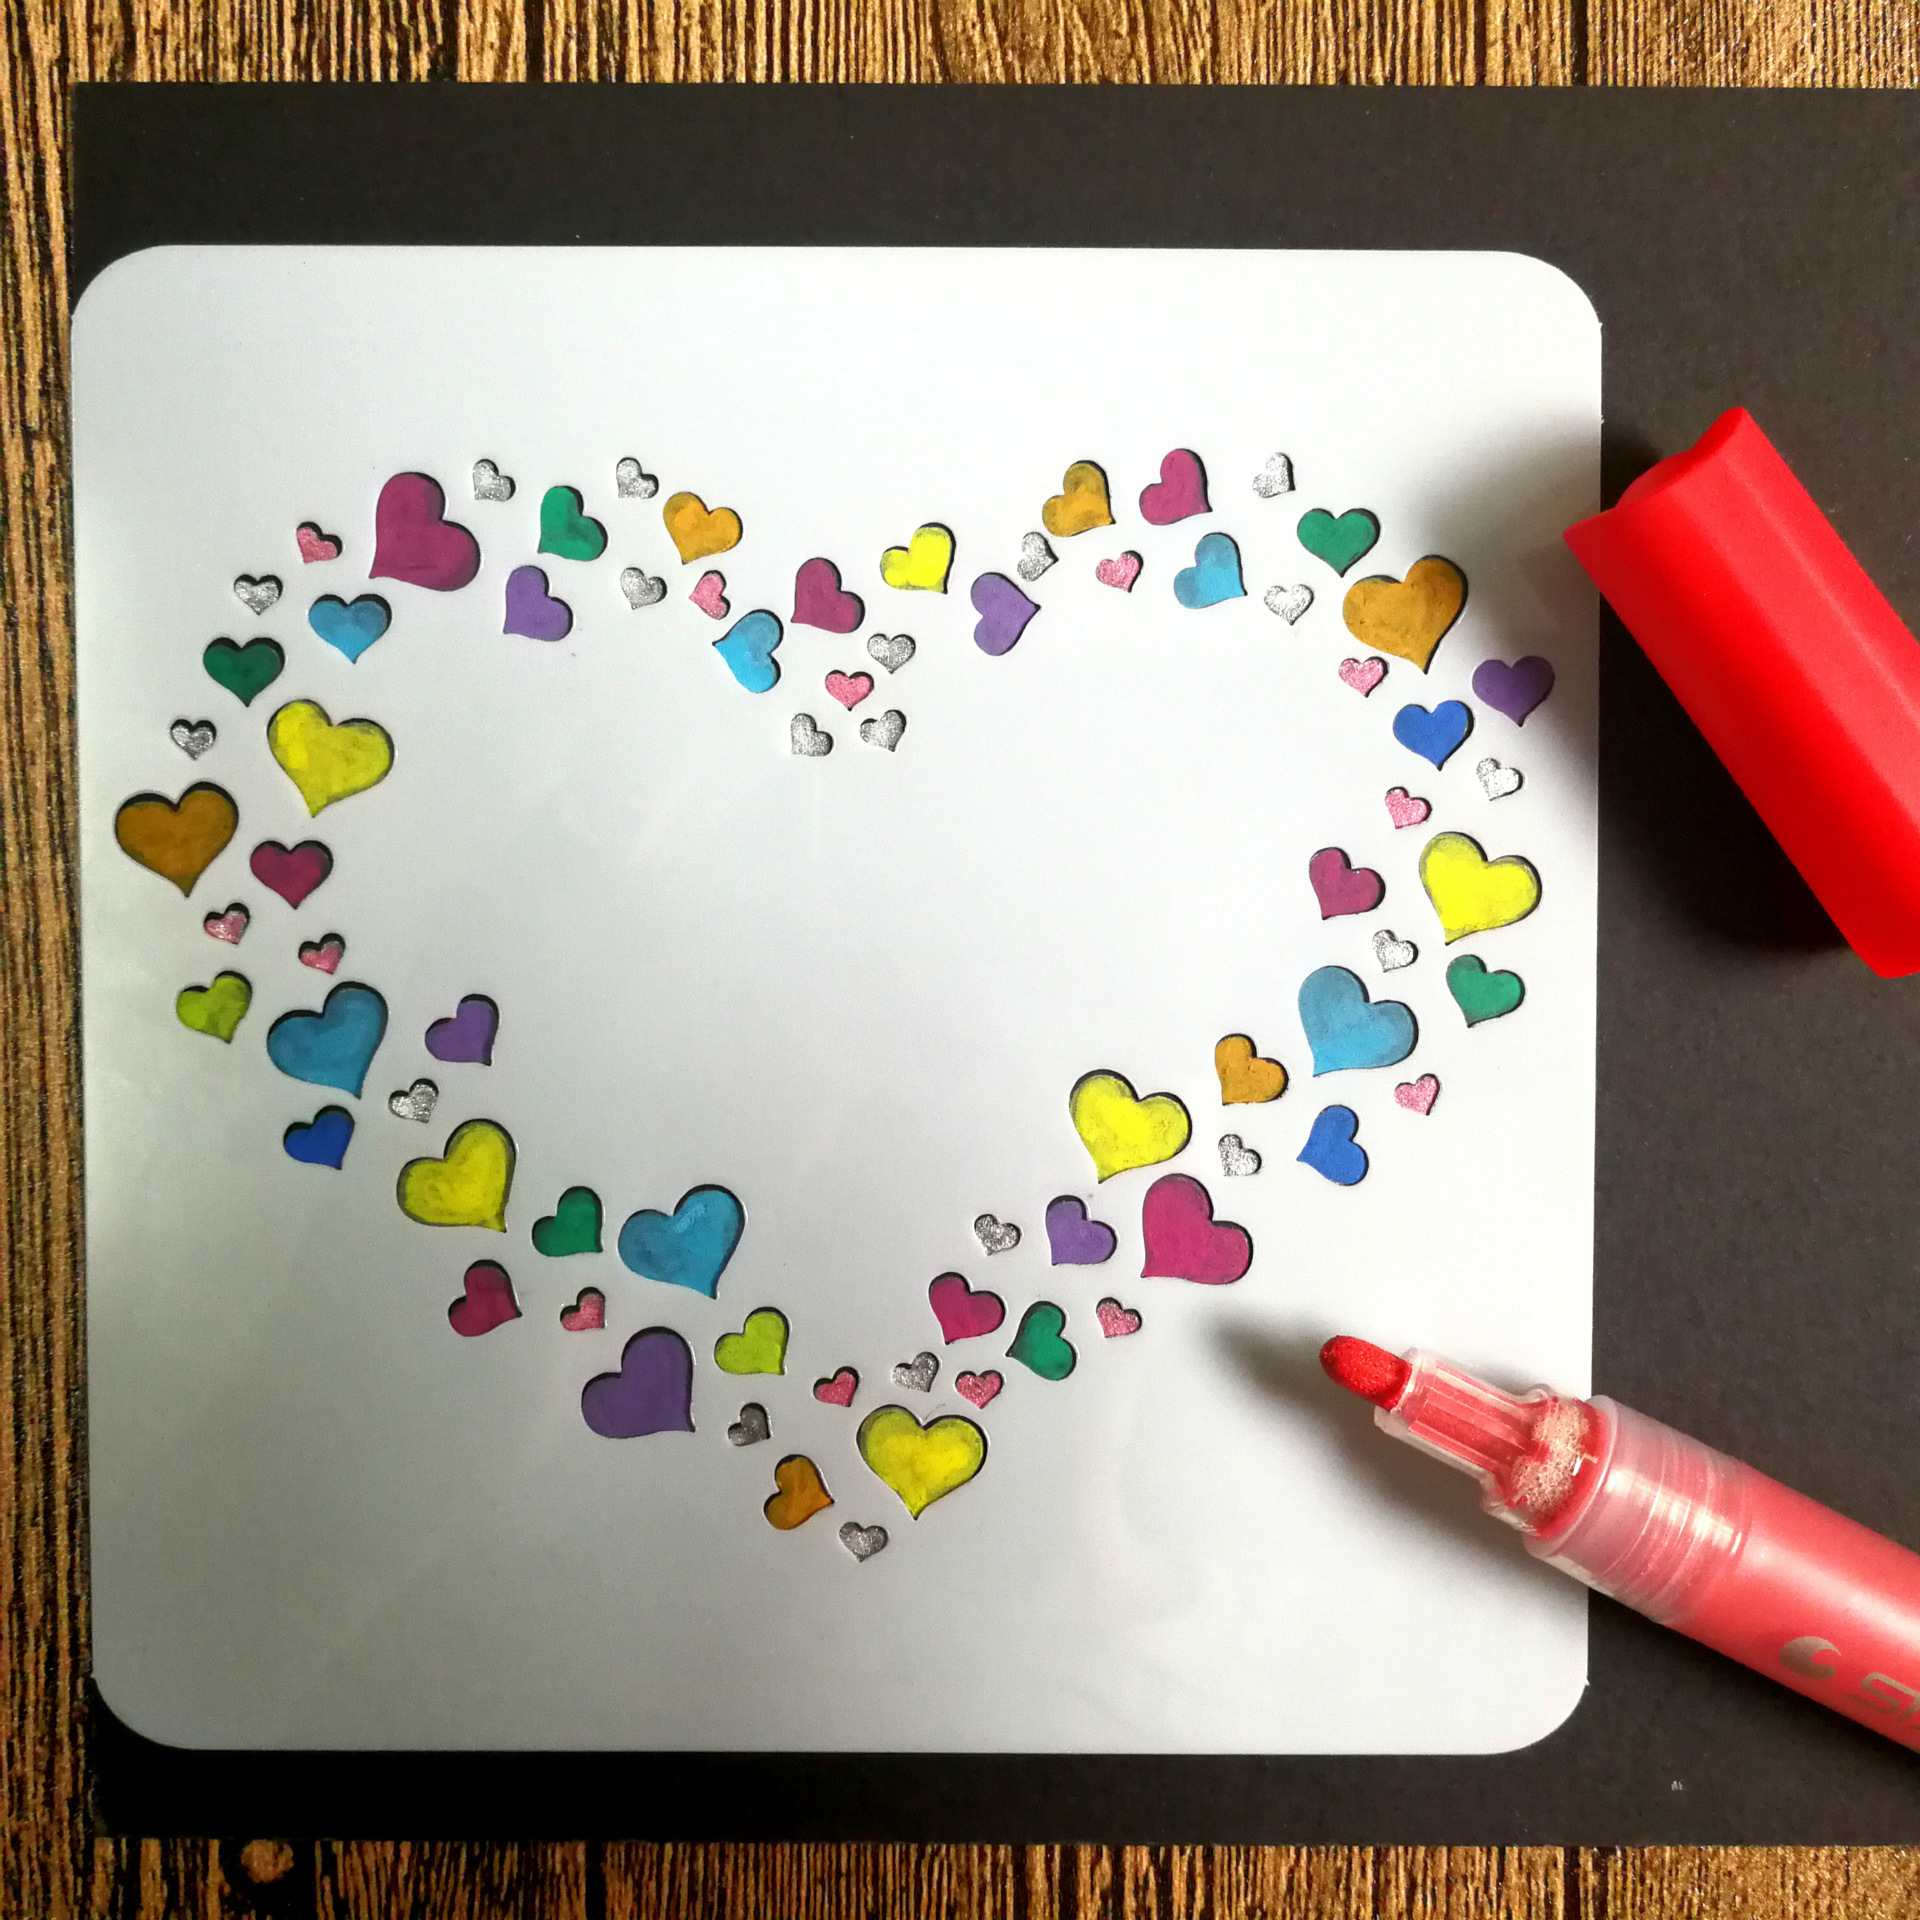 1pc Novelty Heart PP DIY Drawing Template Ruler Promotional Gift Stationery School Supplies Xmas Gift Multi Ruler